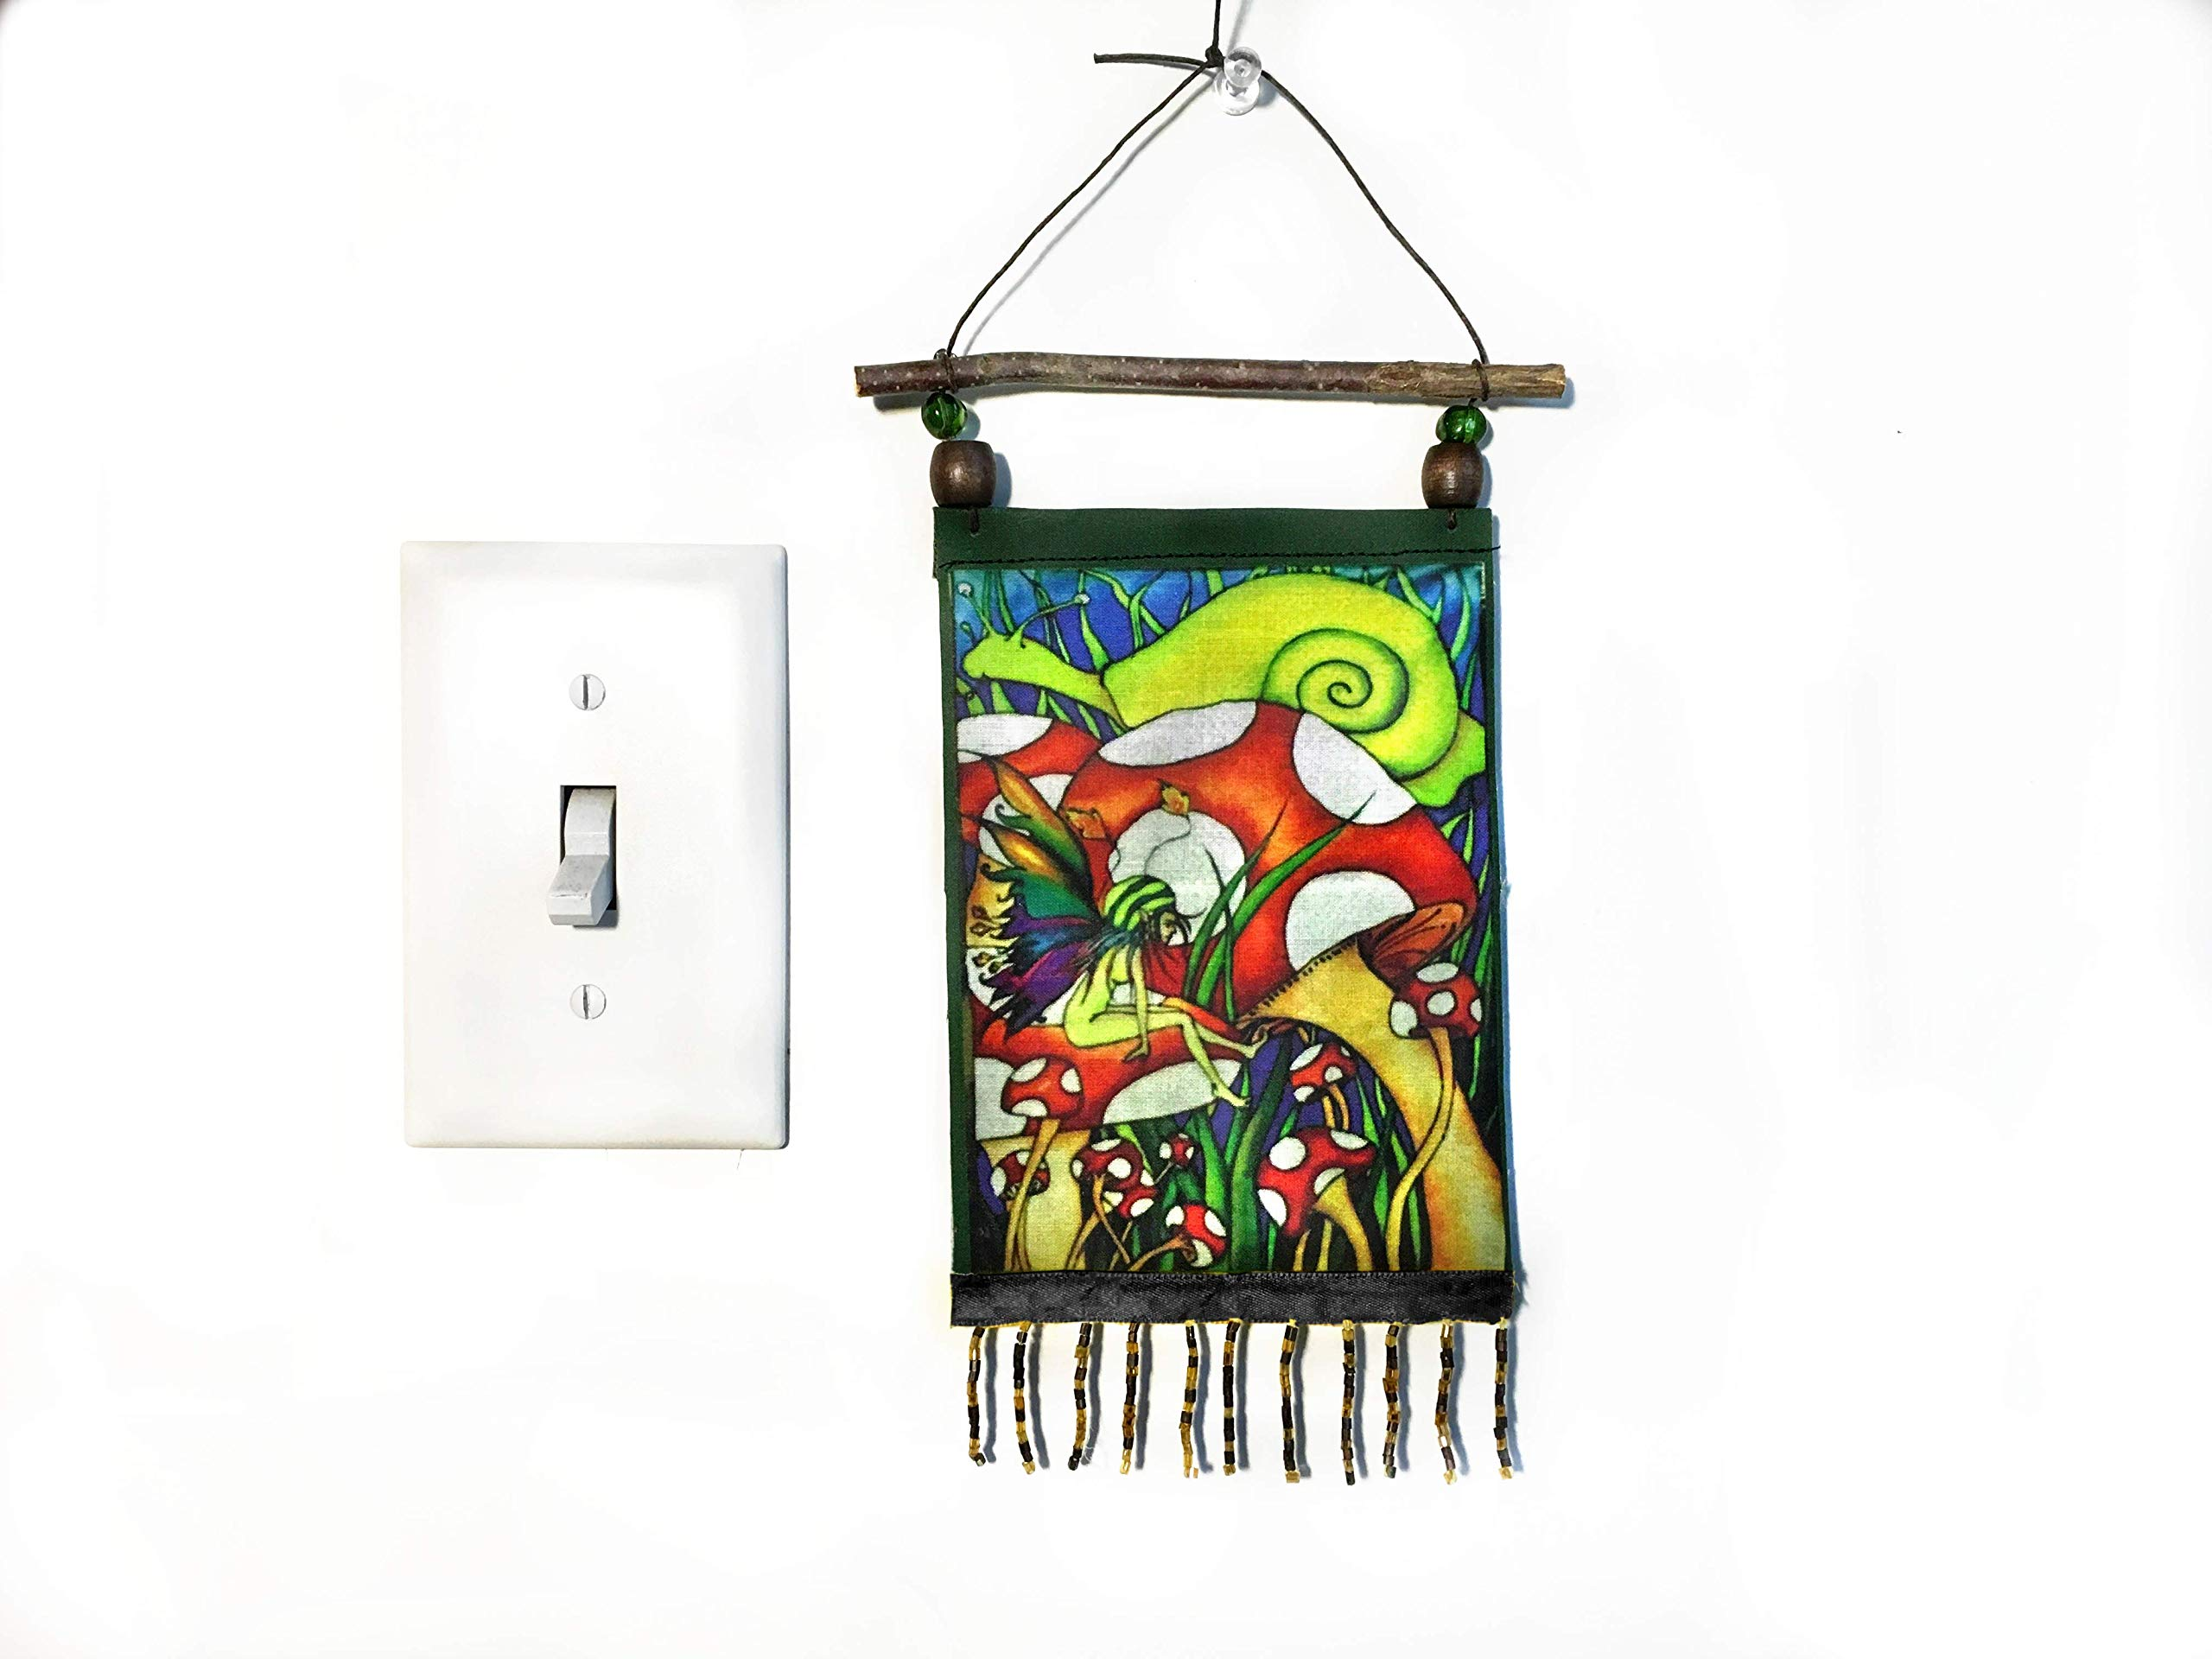 Pixie Fairy Art Wall Hanging Tapestry - Magic Mushroom and Mr. Snail